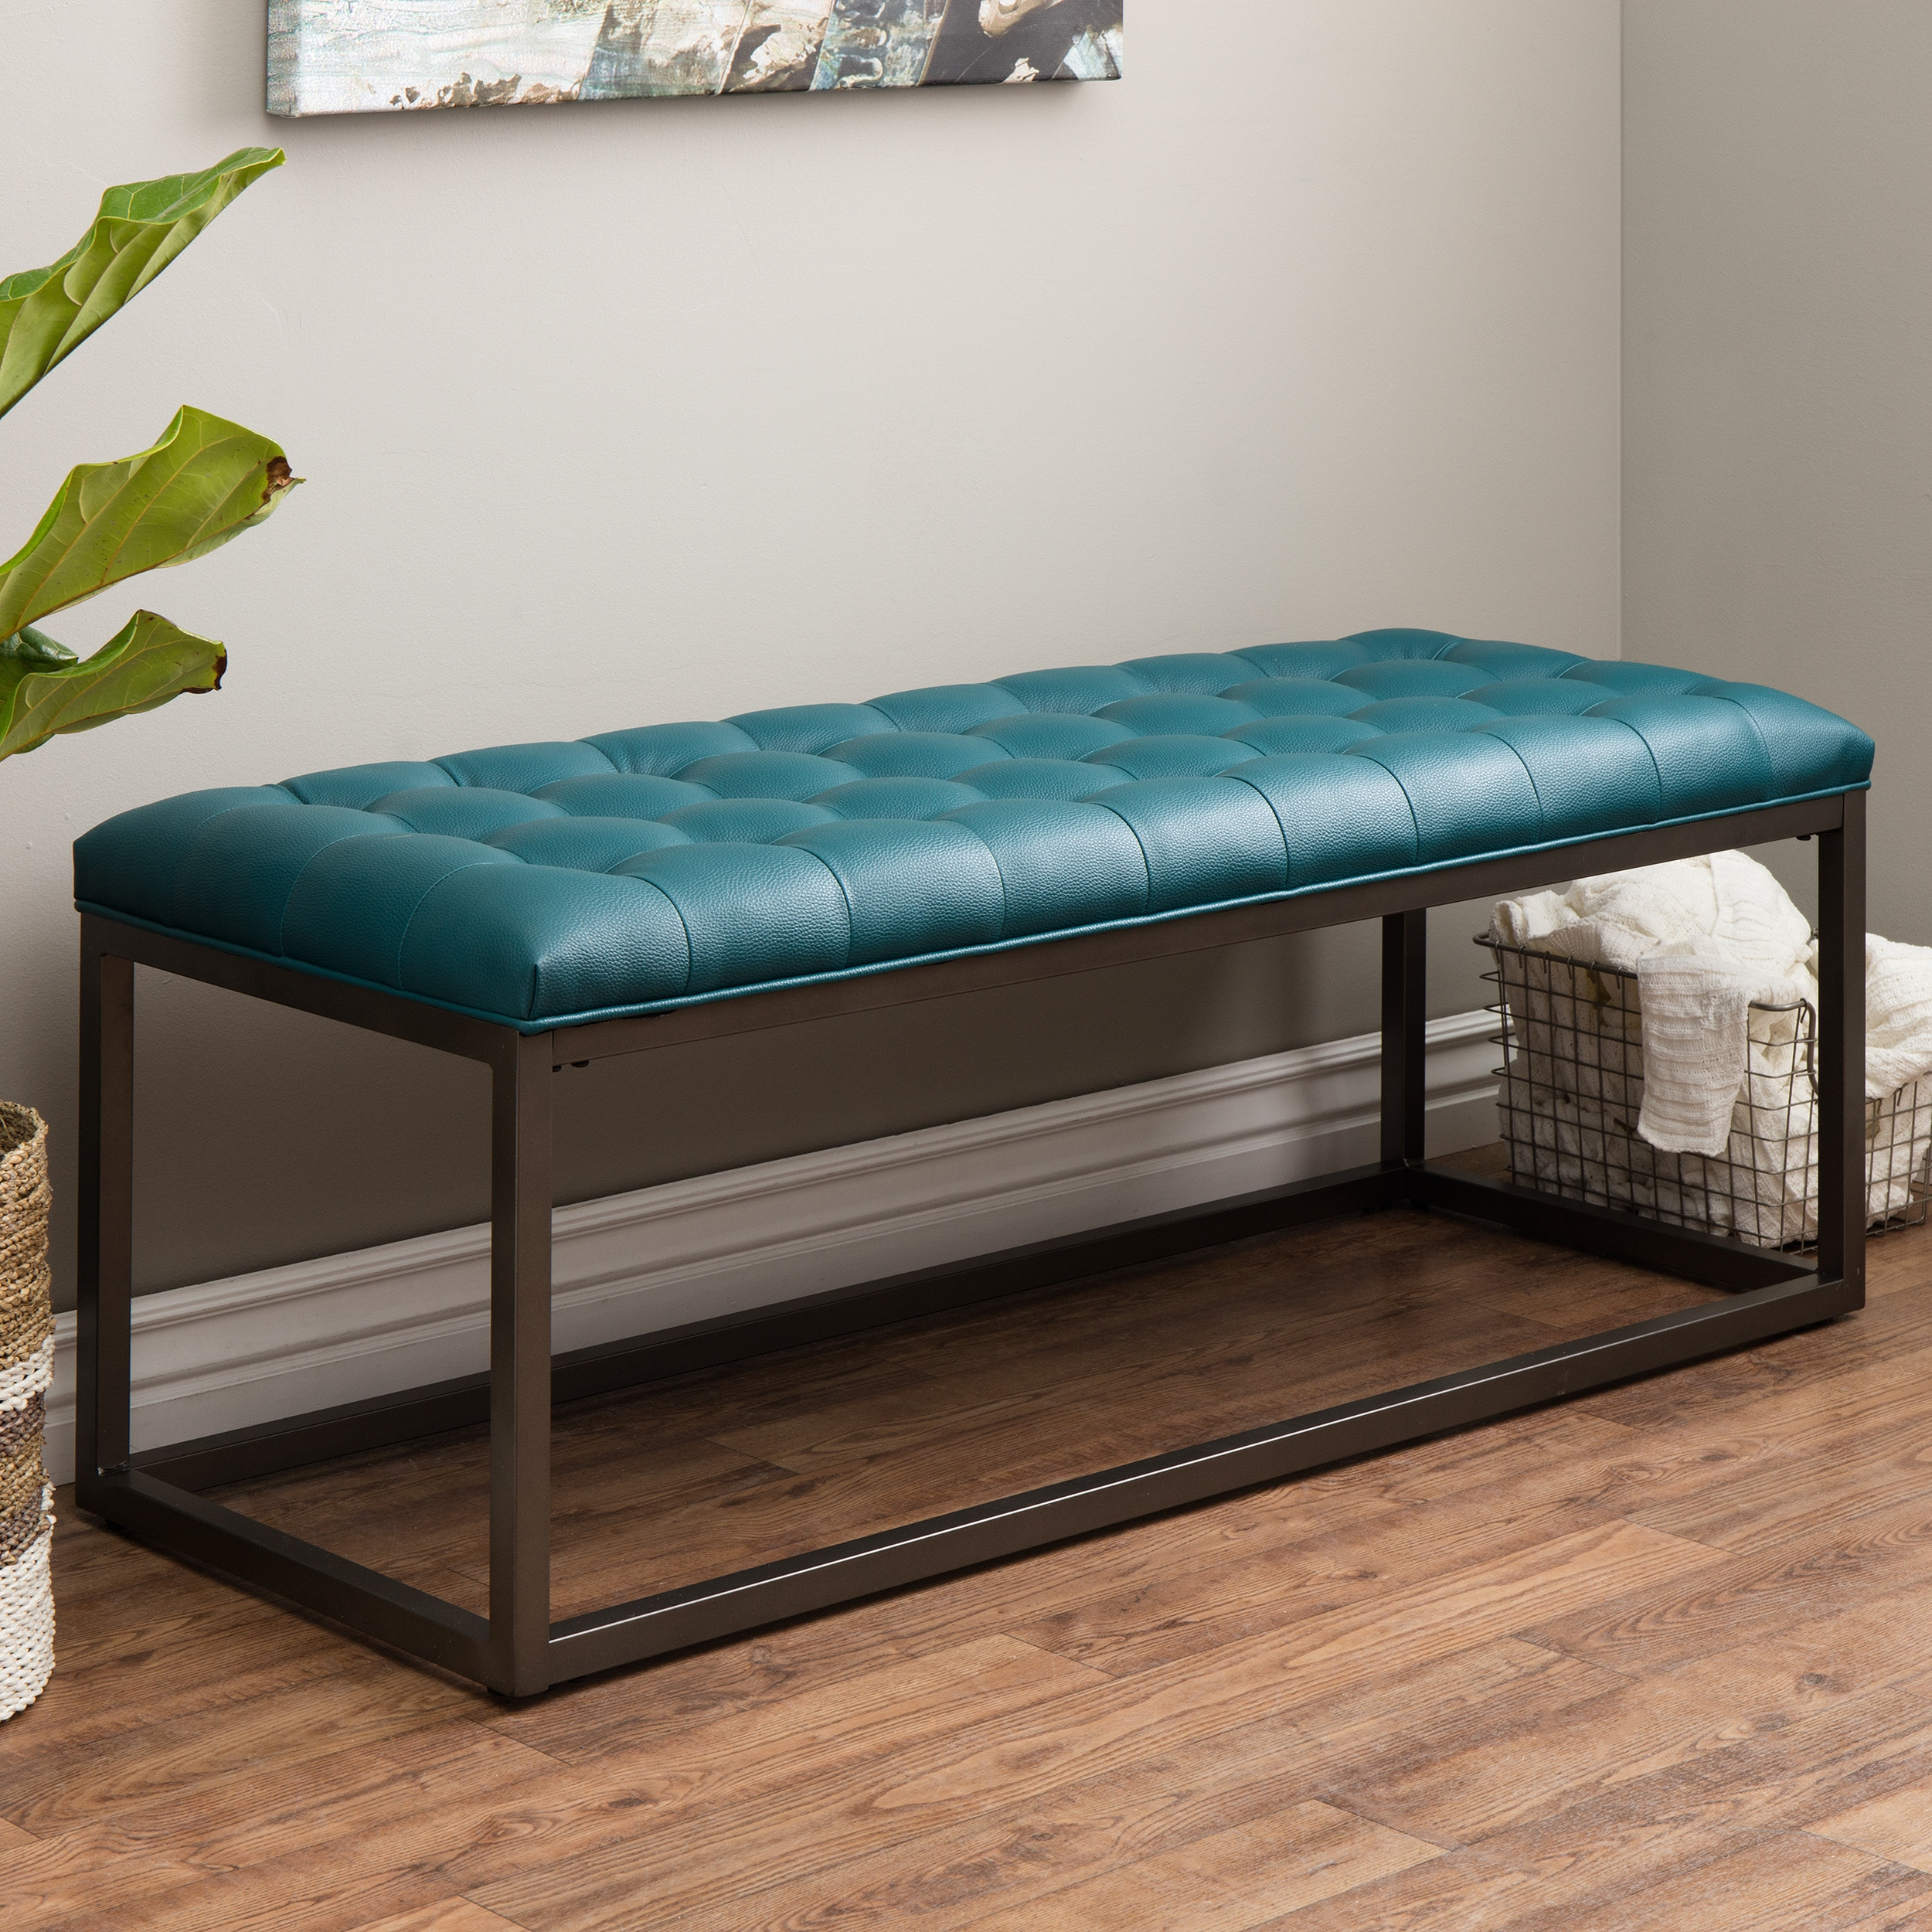 Shop Jasper Laine Healy Teal Leather Tufted Bench - Free Shipping ...